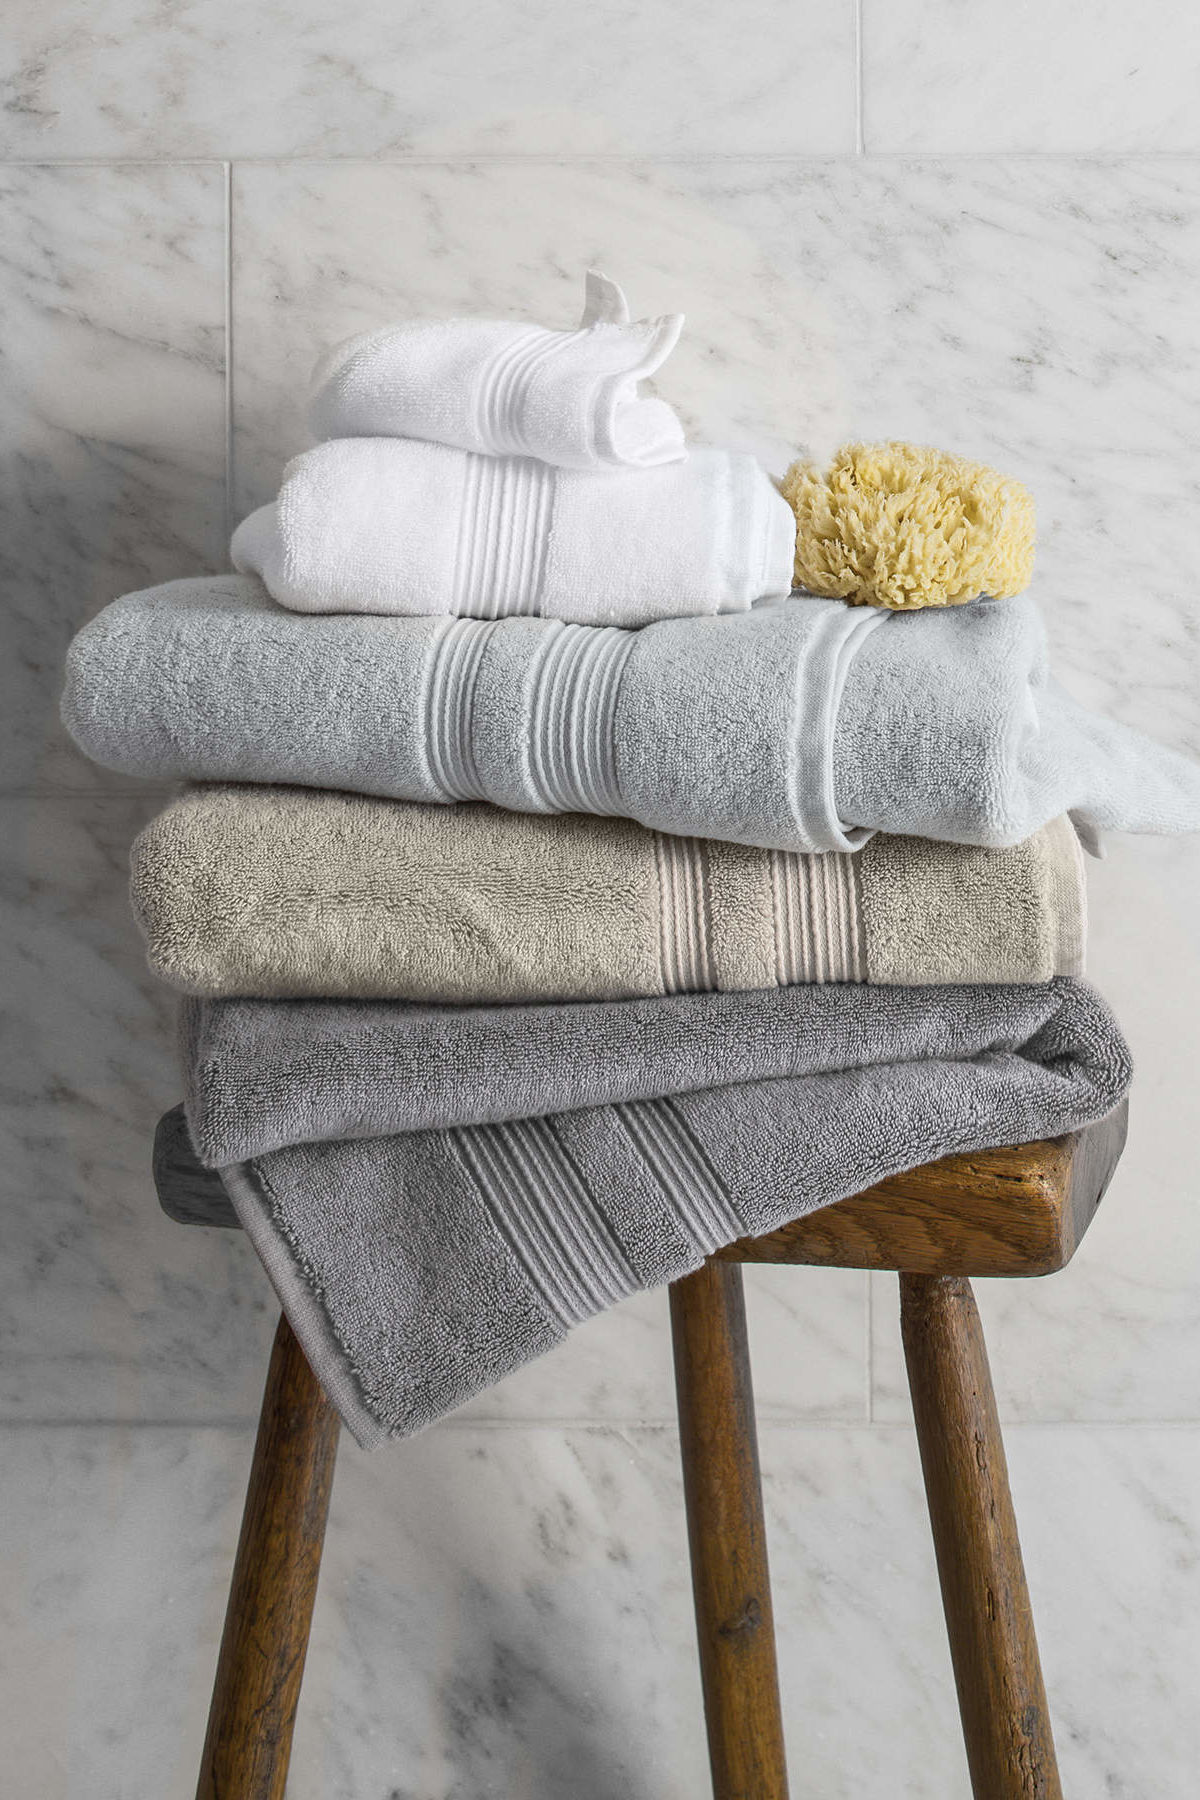 These Are the Bath Towels of Your Dreams